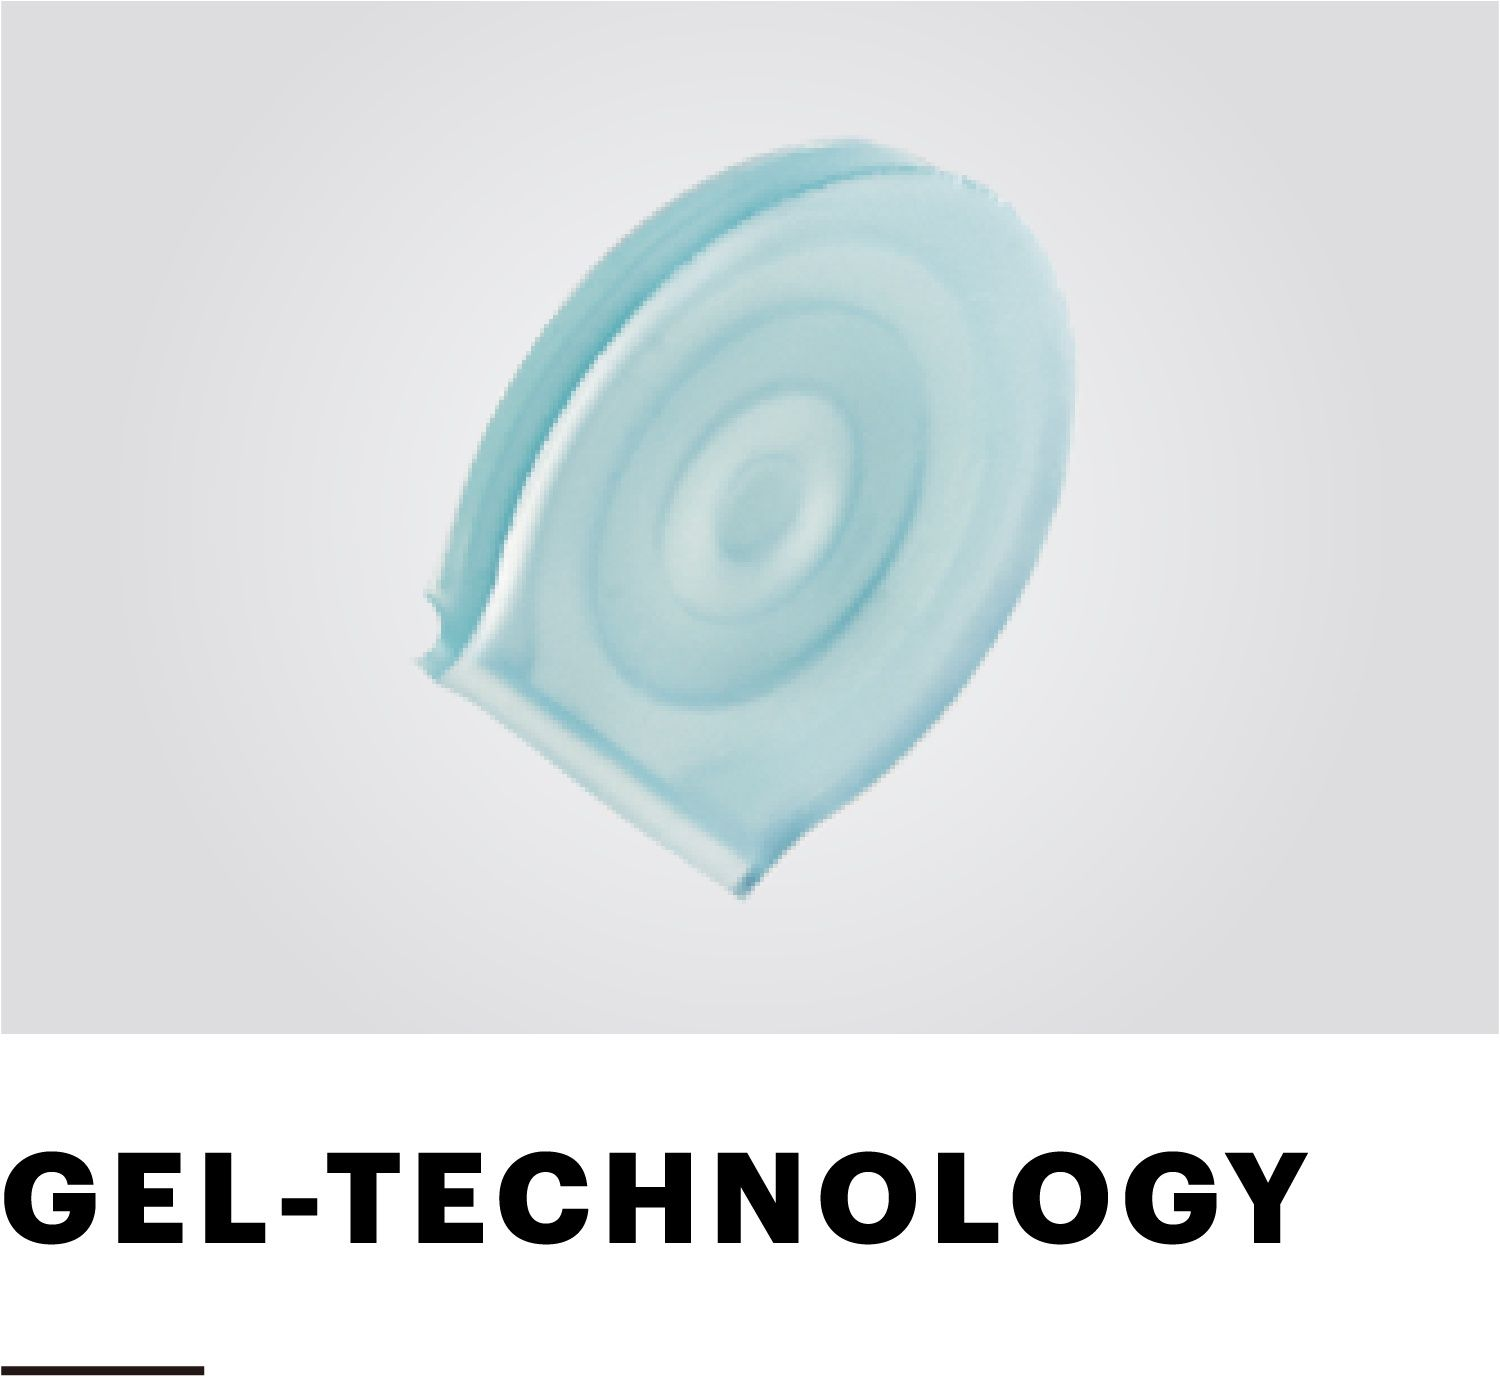 GEL-TECHNOLOGY